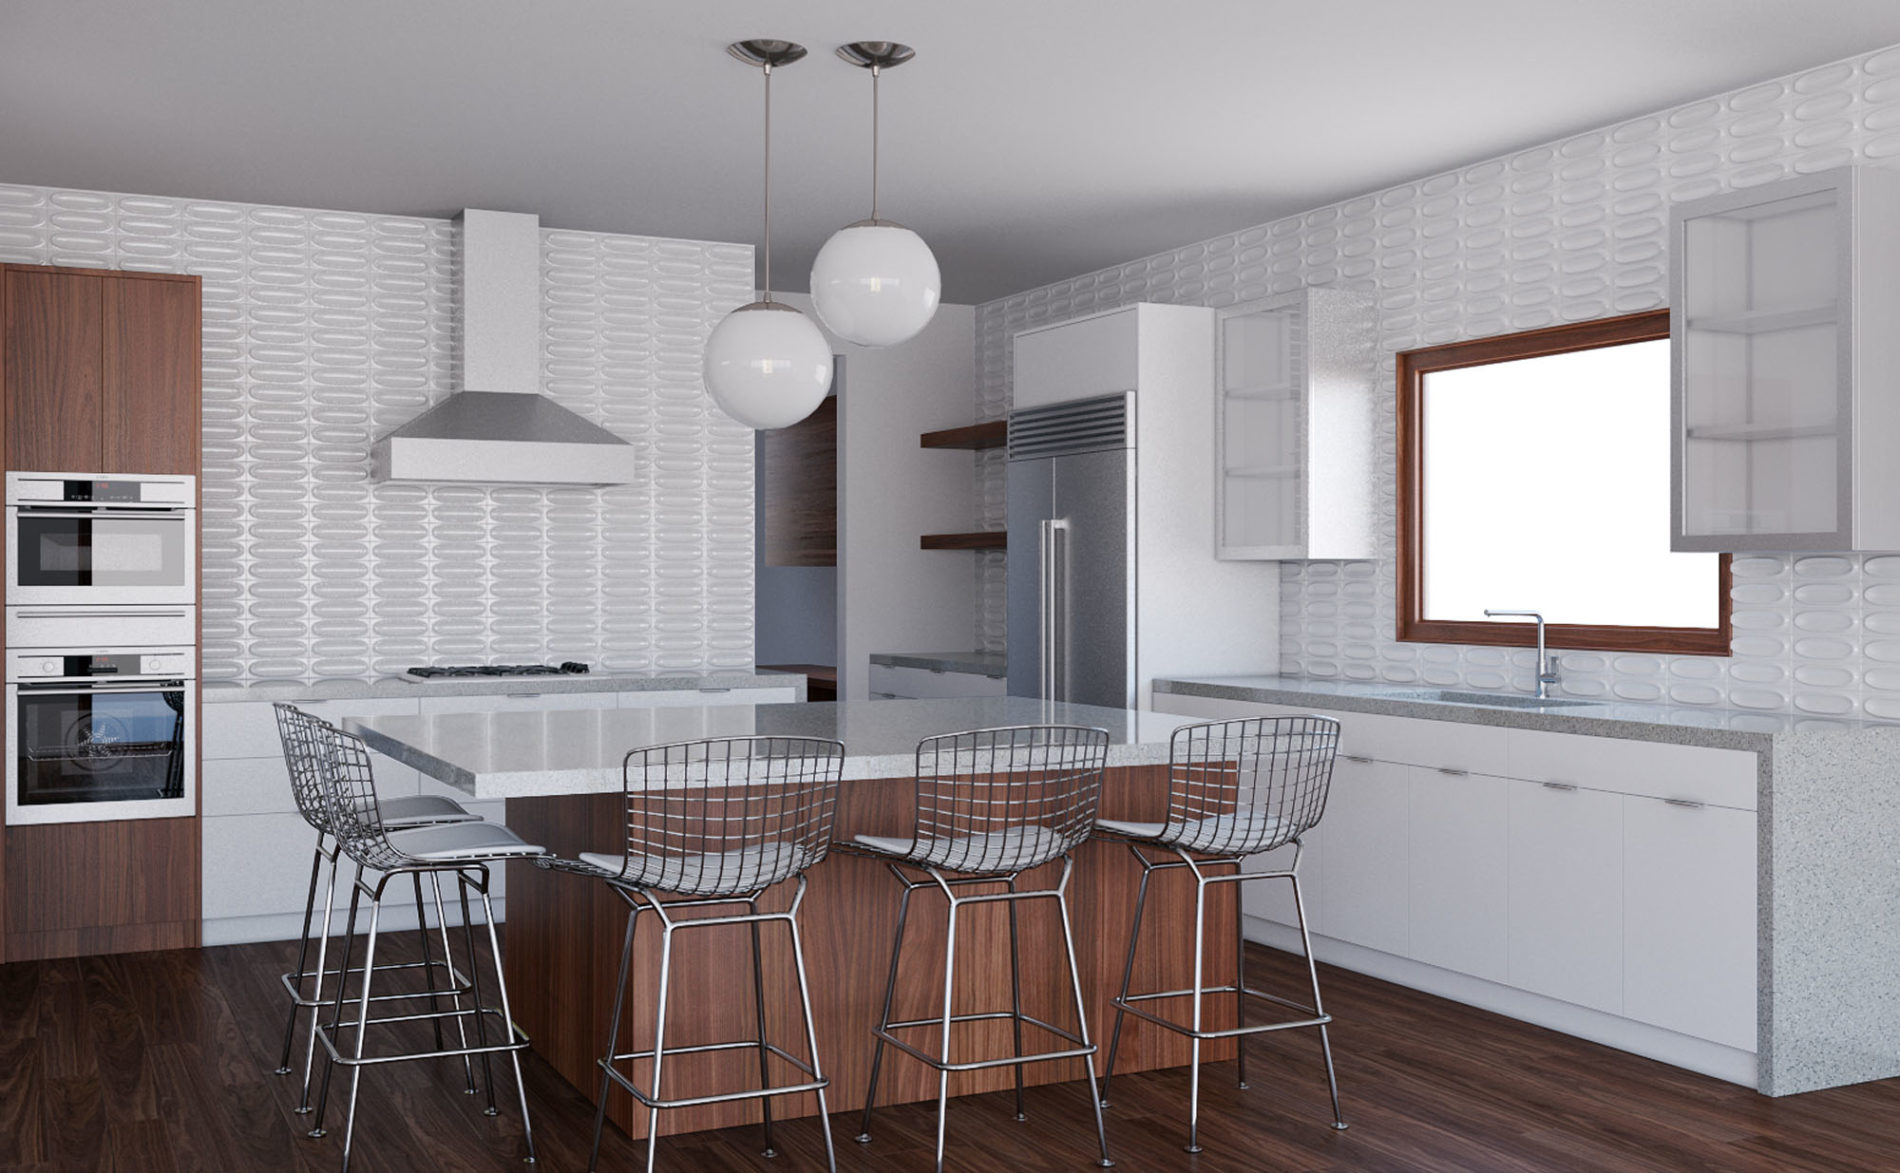 In This Midcentury Modern Kitchen Composition We Combined A Retro Aesthetic With Functionality